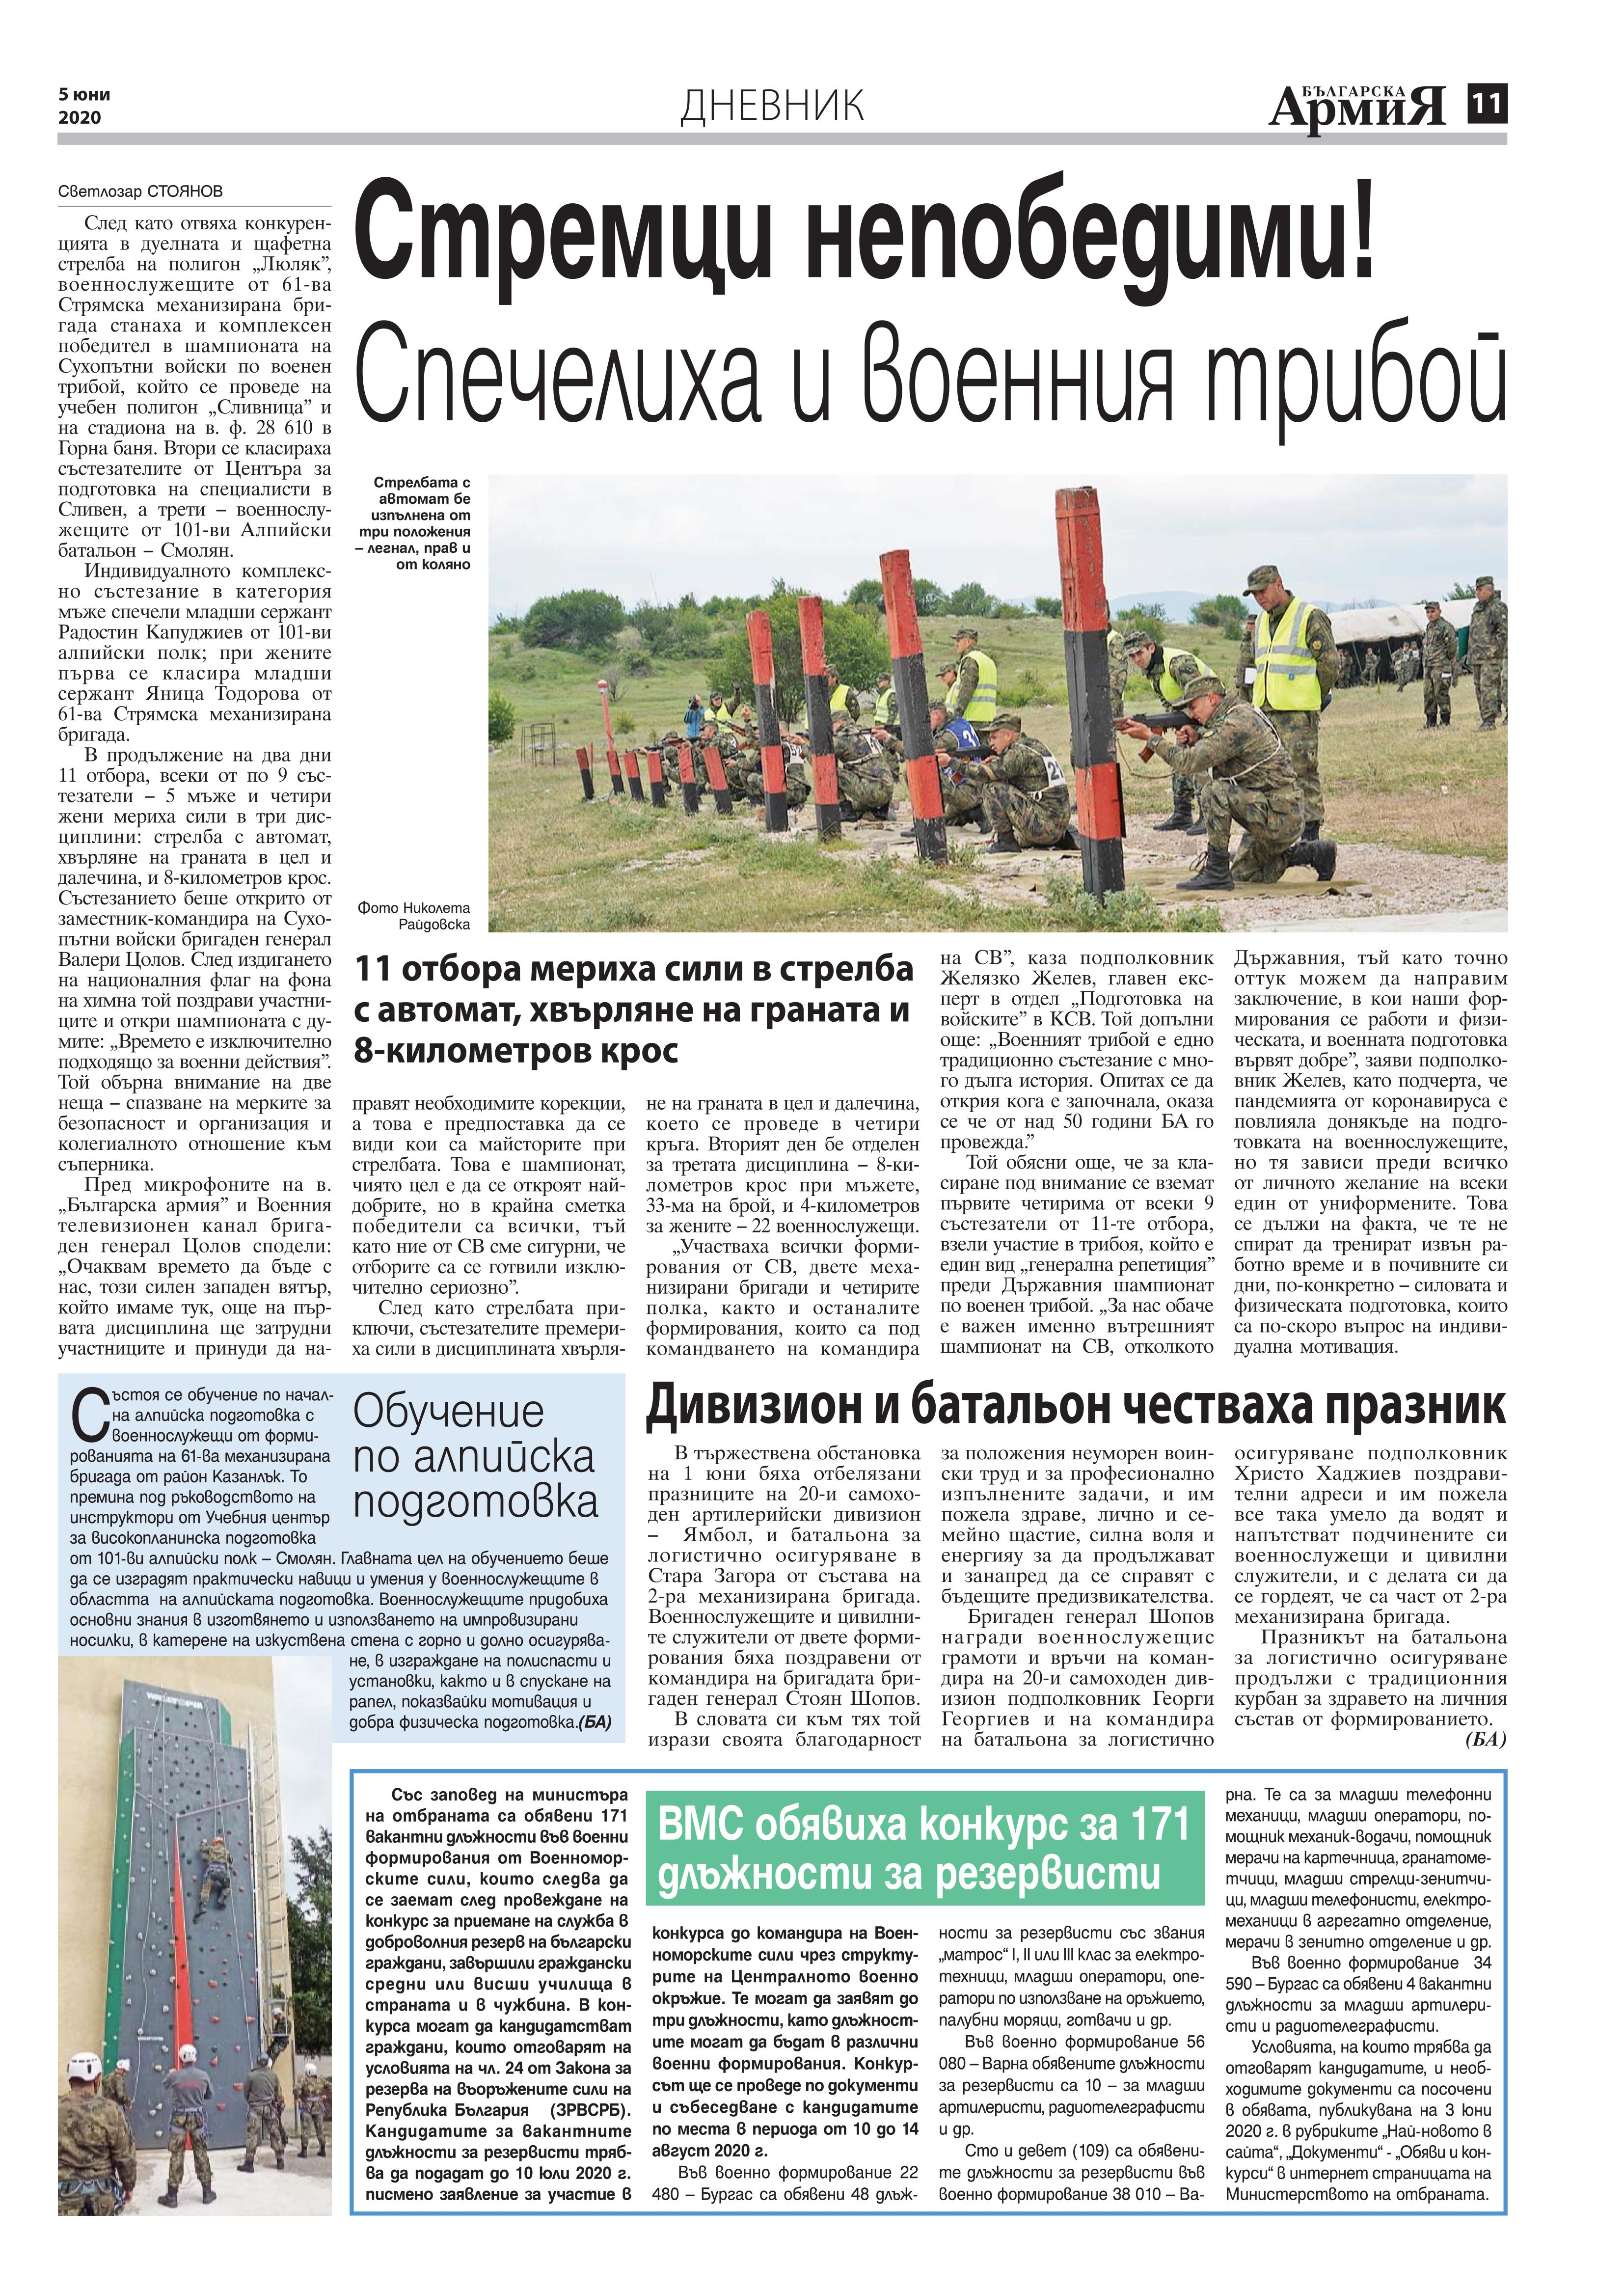 https://www.armymedia.bg/wp-content/uploads/2015/06/11.page1_-141.jpg